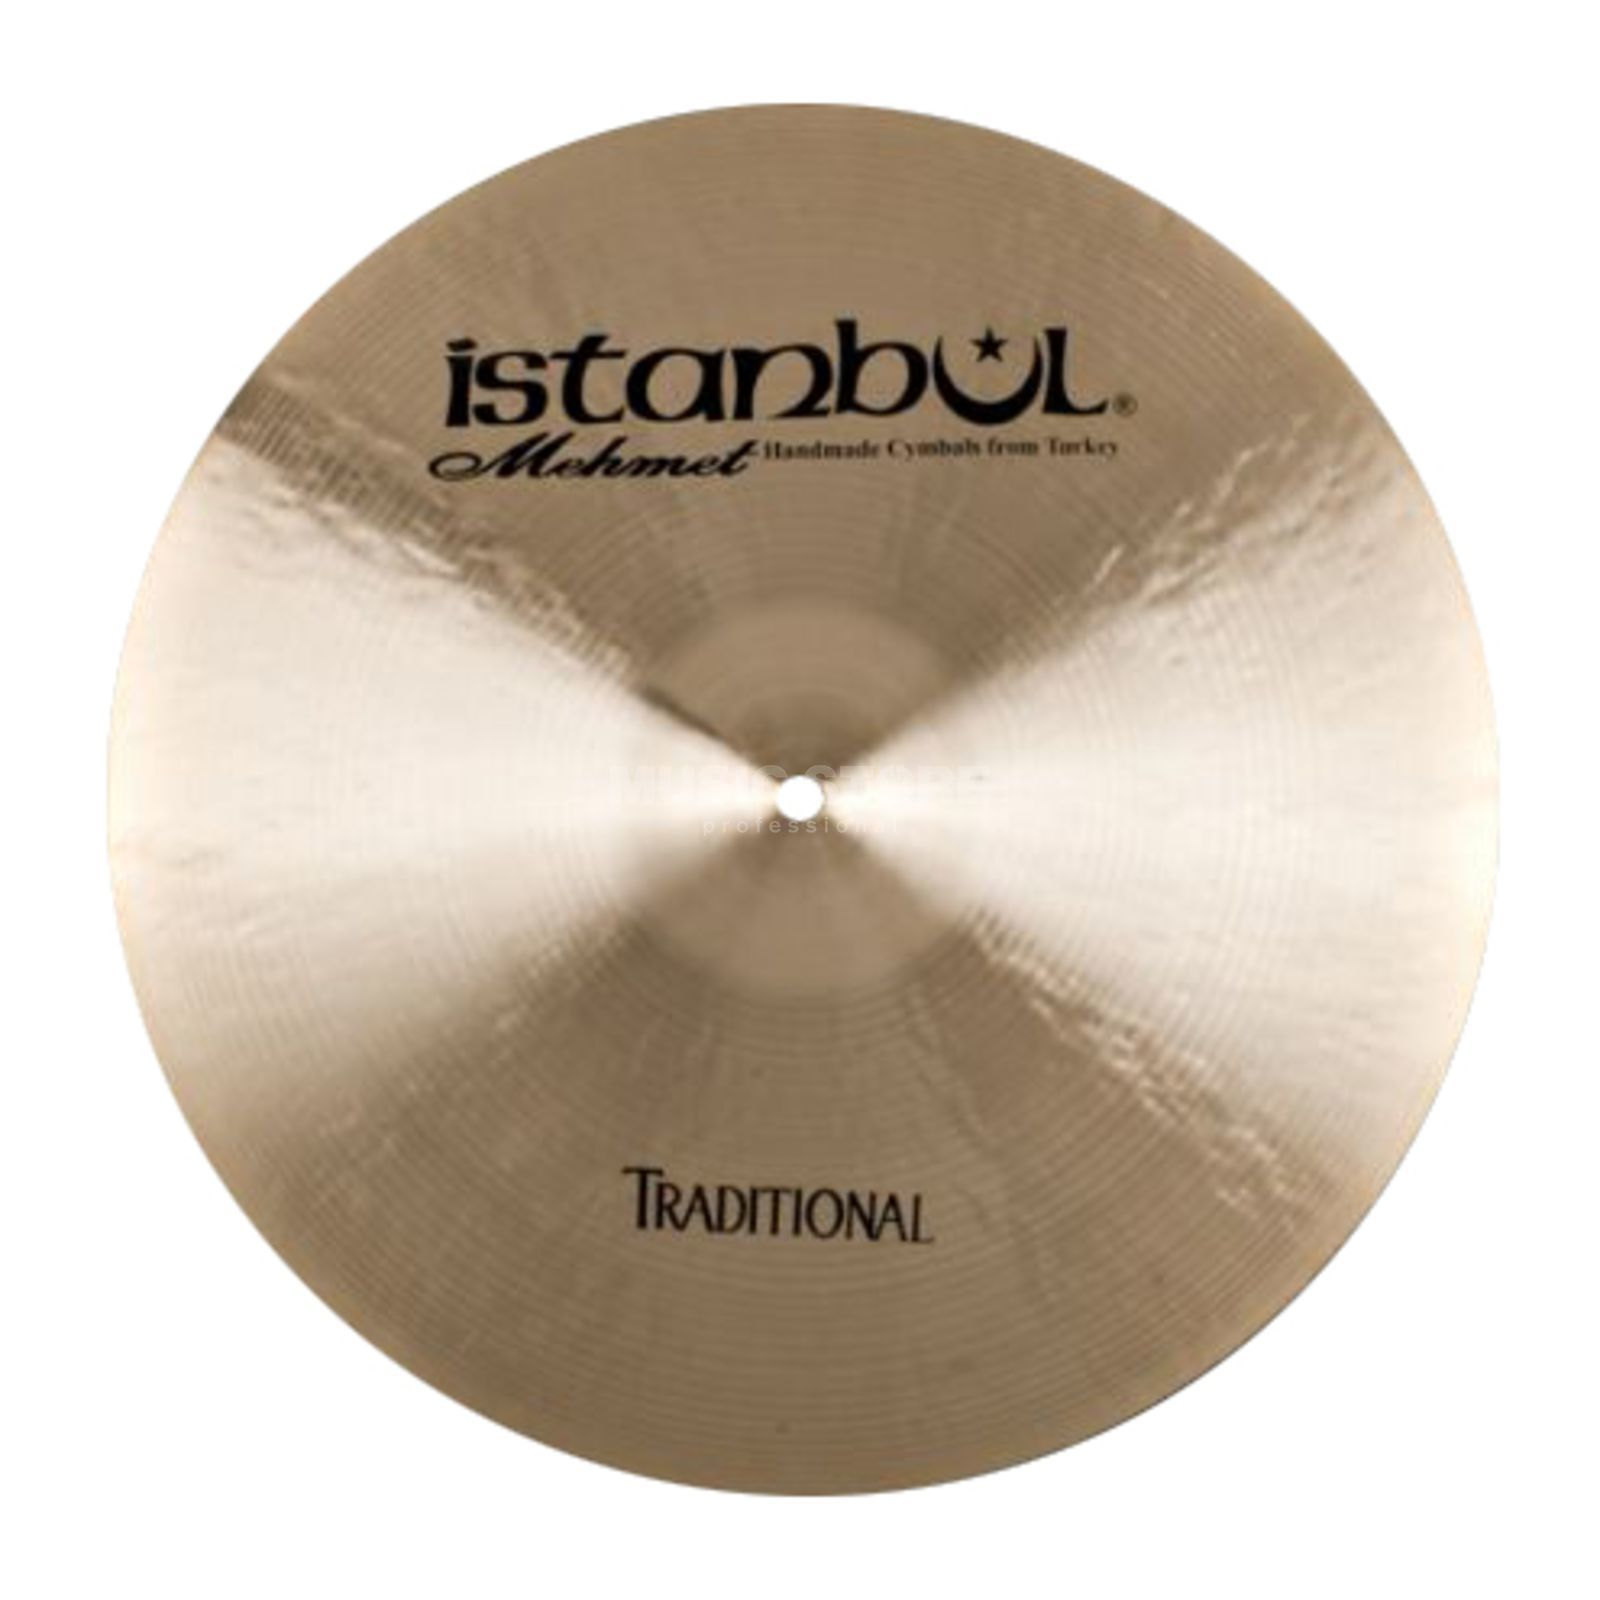 "Istanbul Traditional Medium Crash 14"", CM15 Zdjęcie produktu"